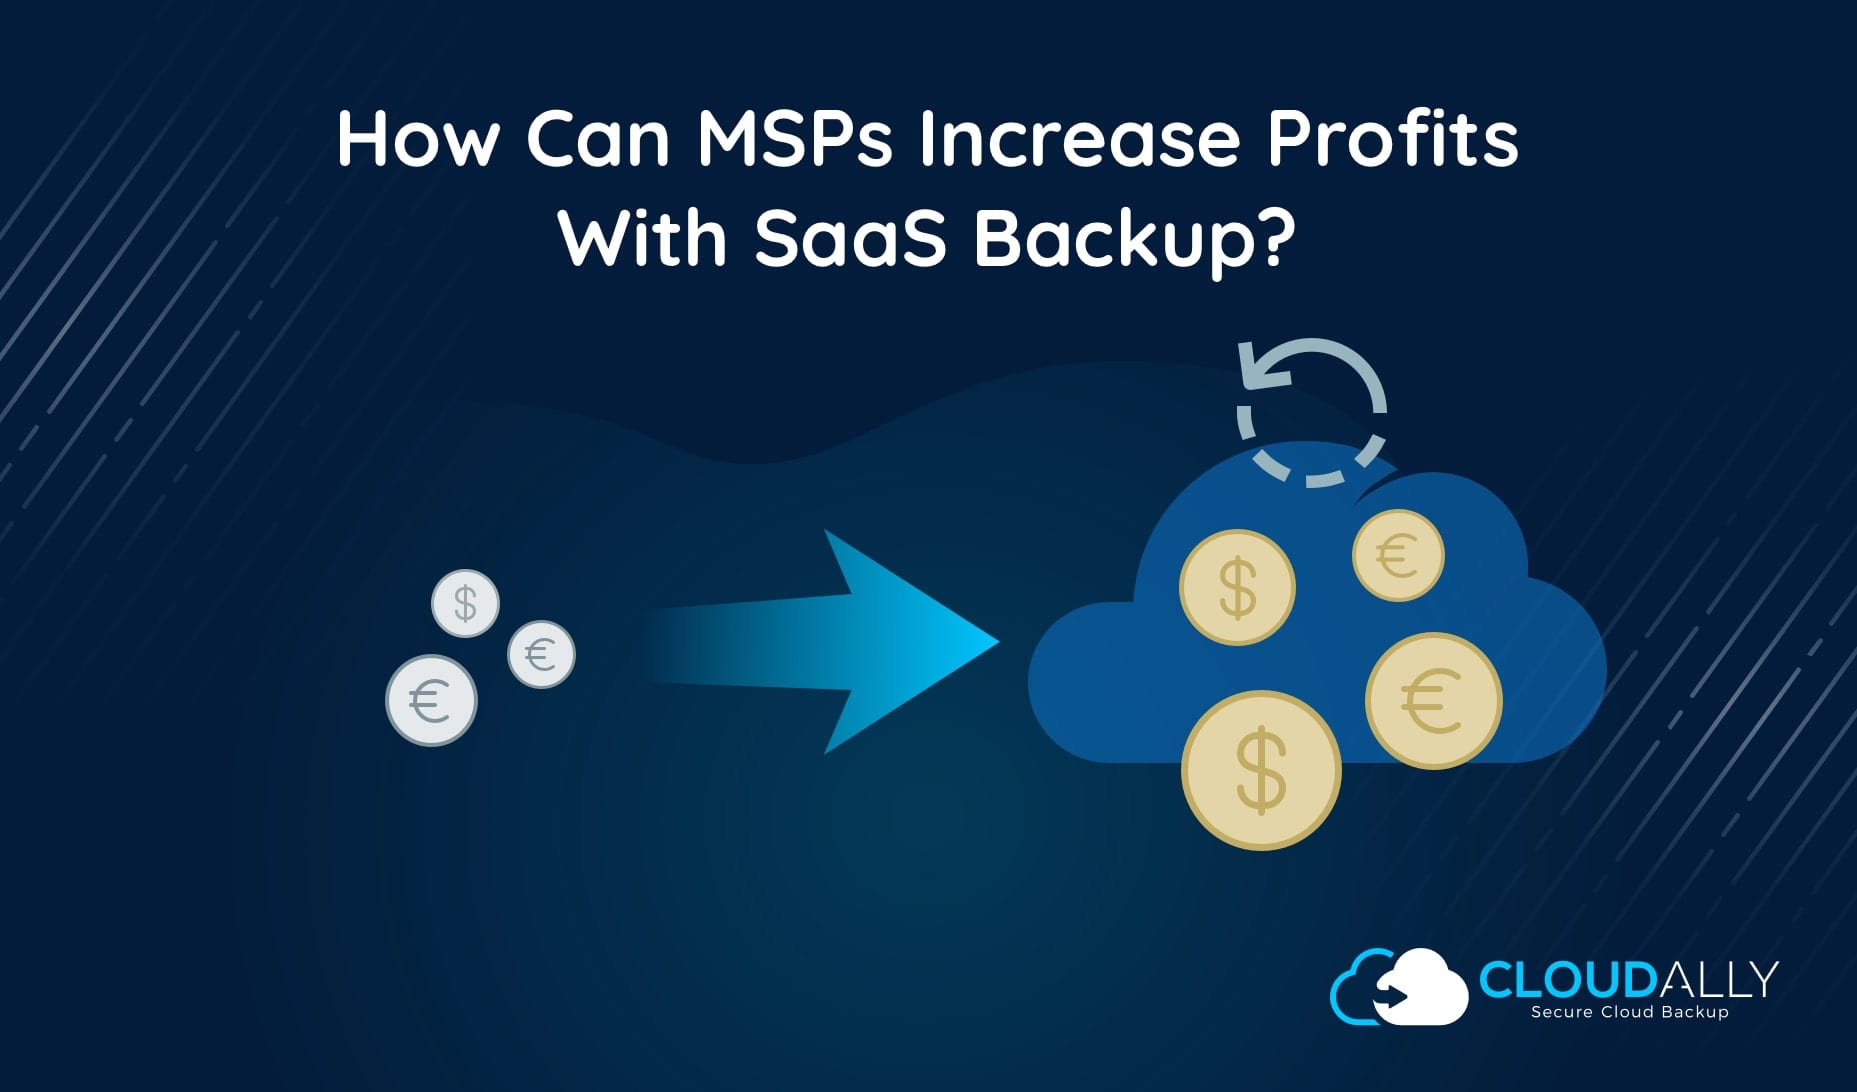 Grow MSP business Profits